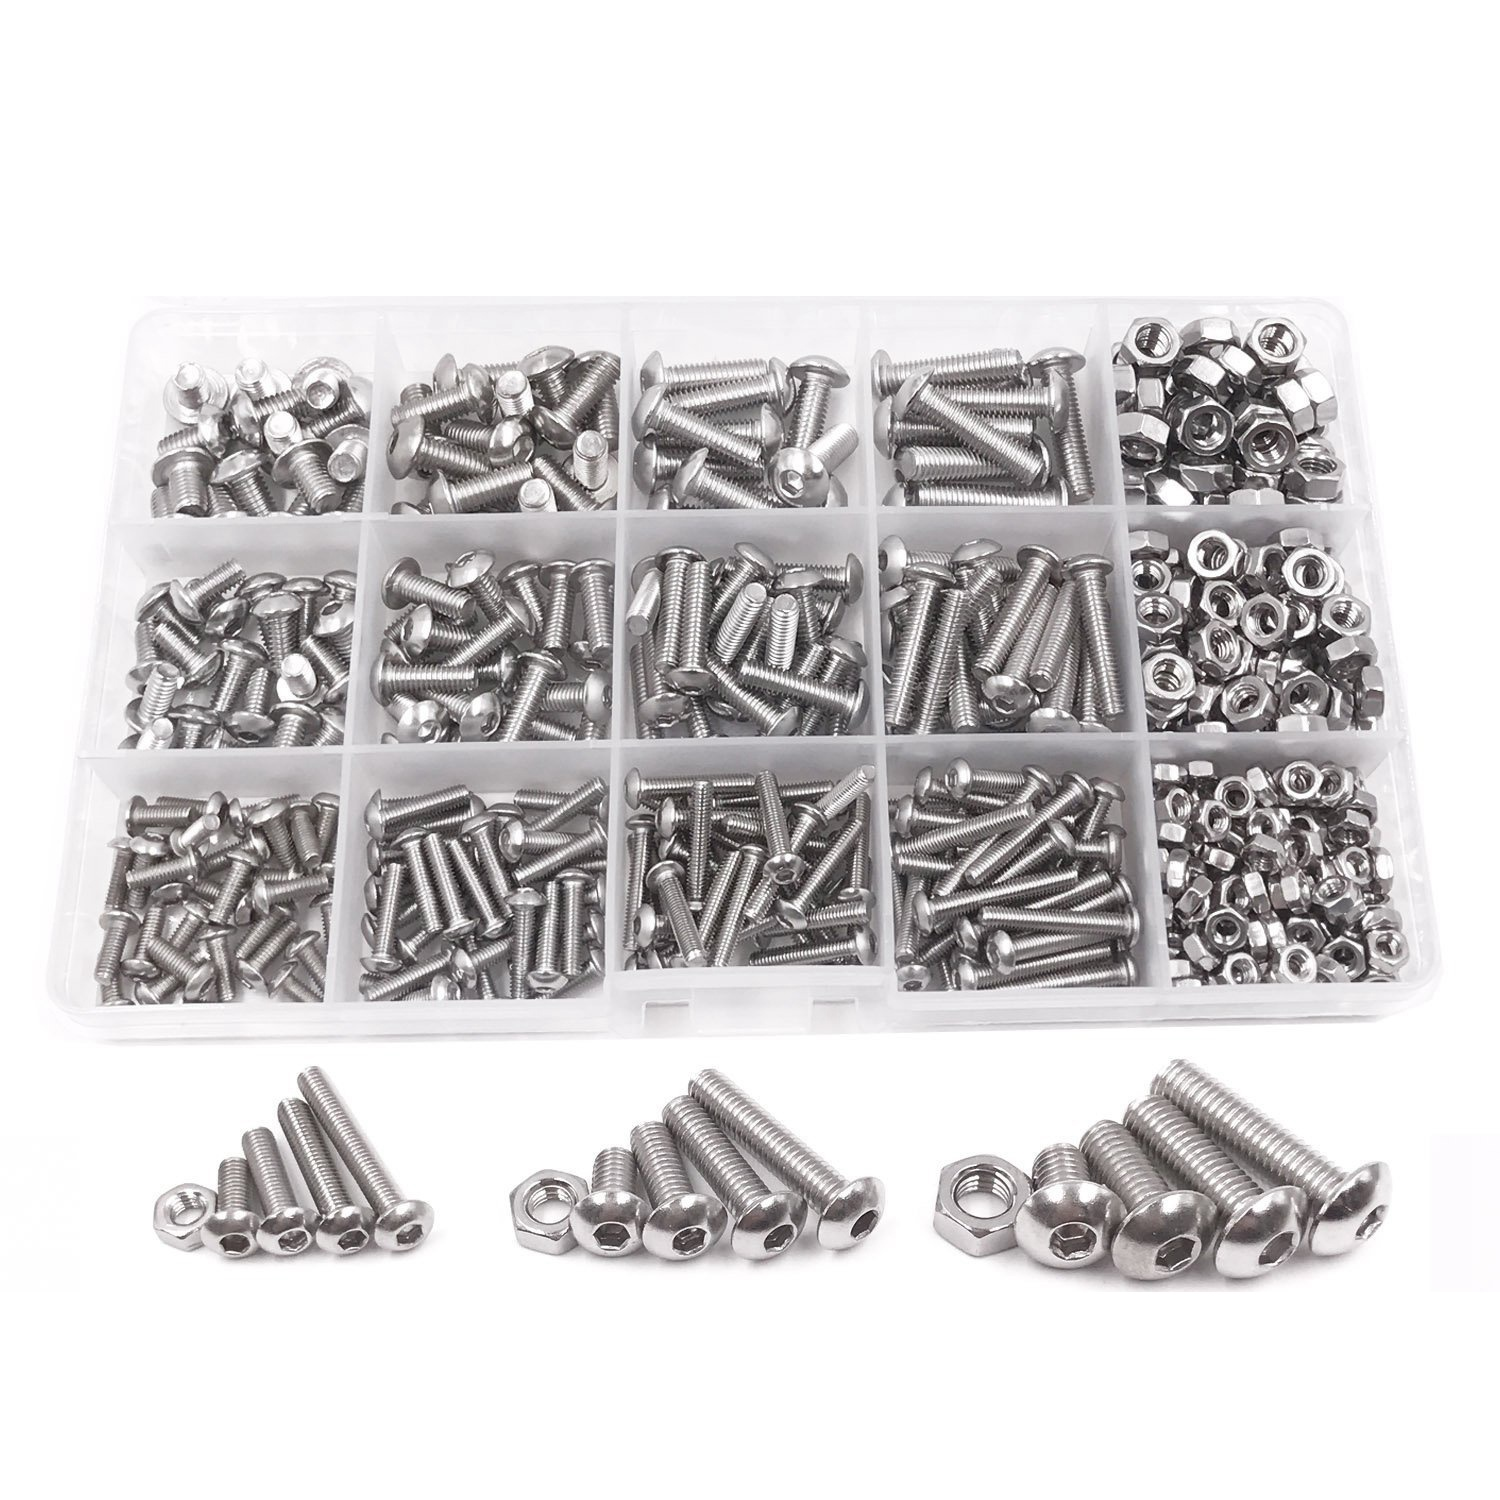 500pcs M3 M4 M5 A2 Stainless Steel ISO7380 Button Head Hex Bolts Hexagon Socket Screws With Nuts Assortment Kit m3 m4 m5 steel head screws bolts nuts hex socket head cap and nuts assortment button head allen bolts hexagon socket screws kit